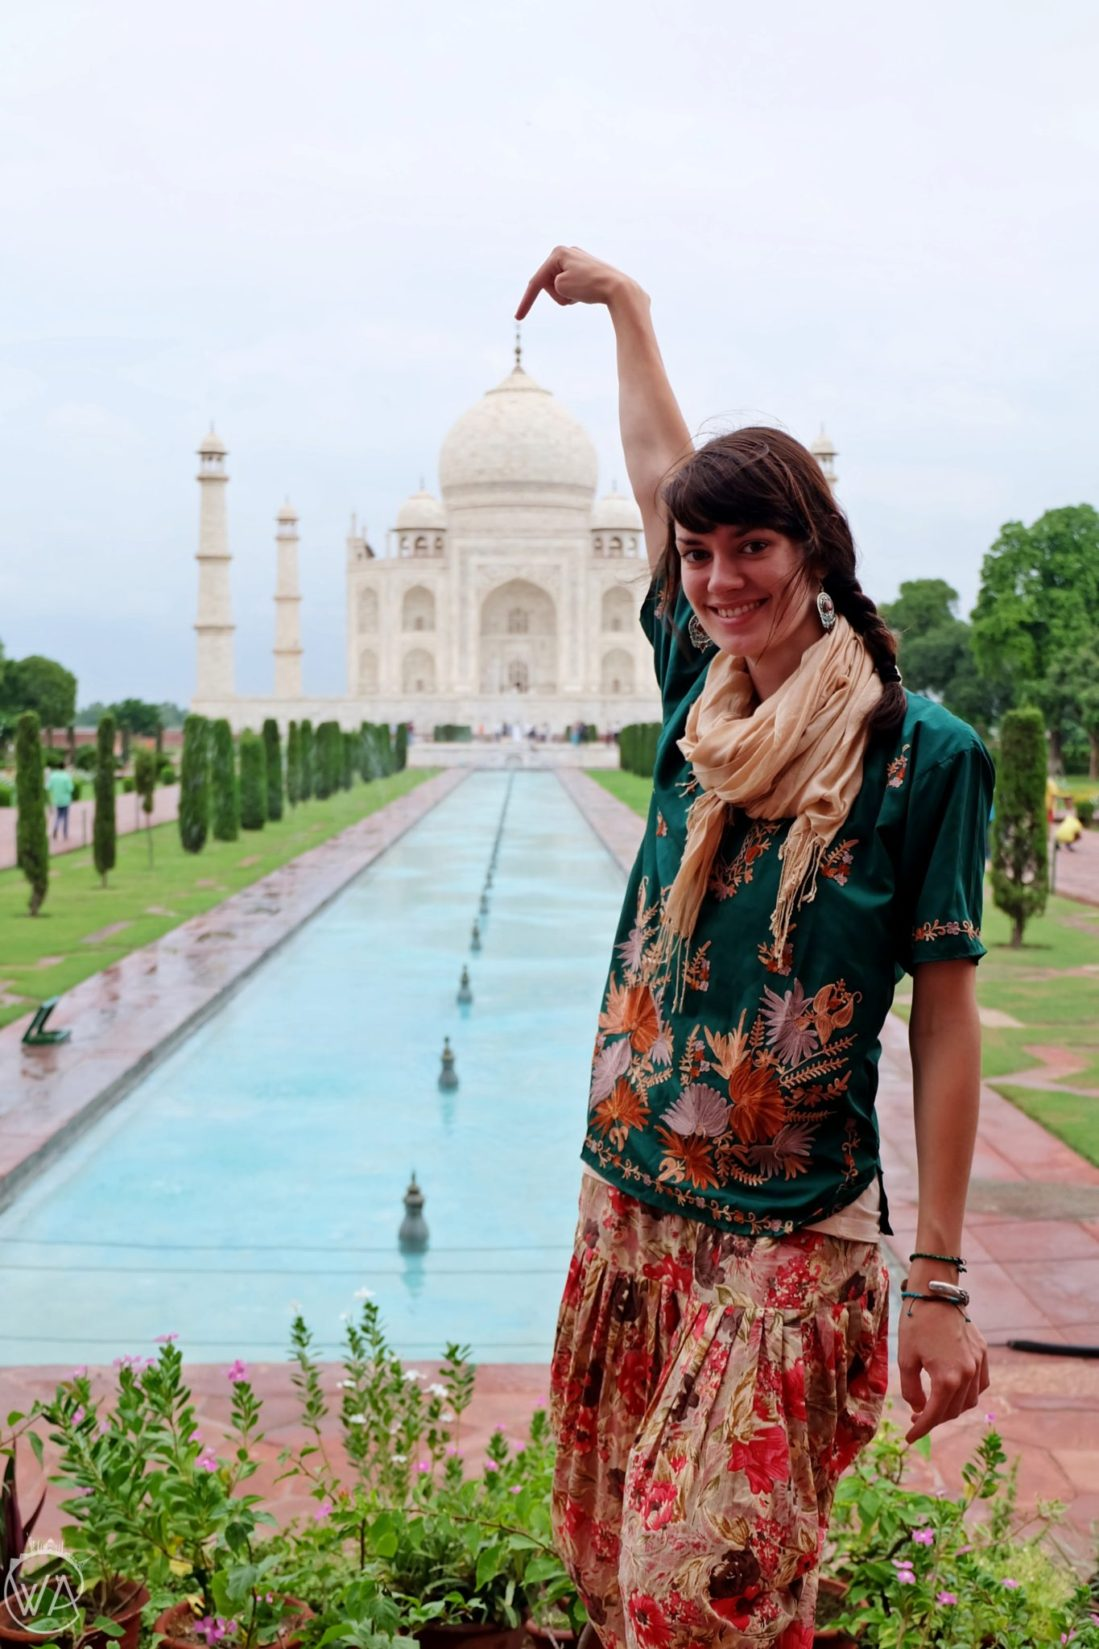 Me in front of taj mahal